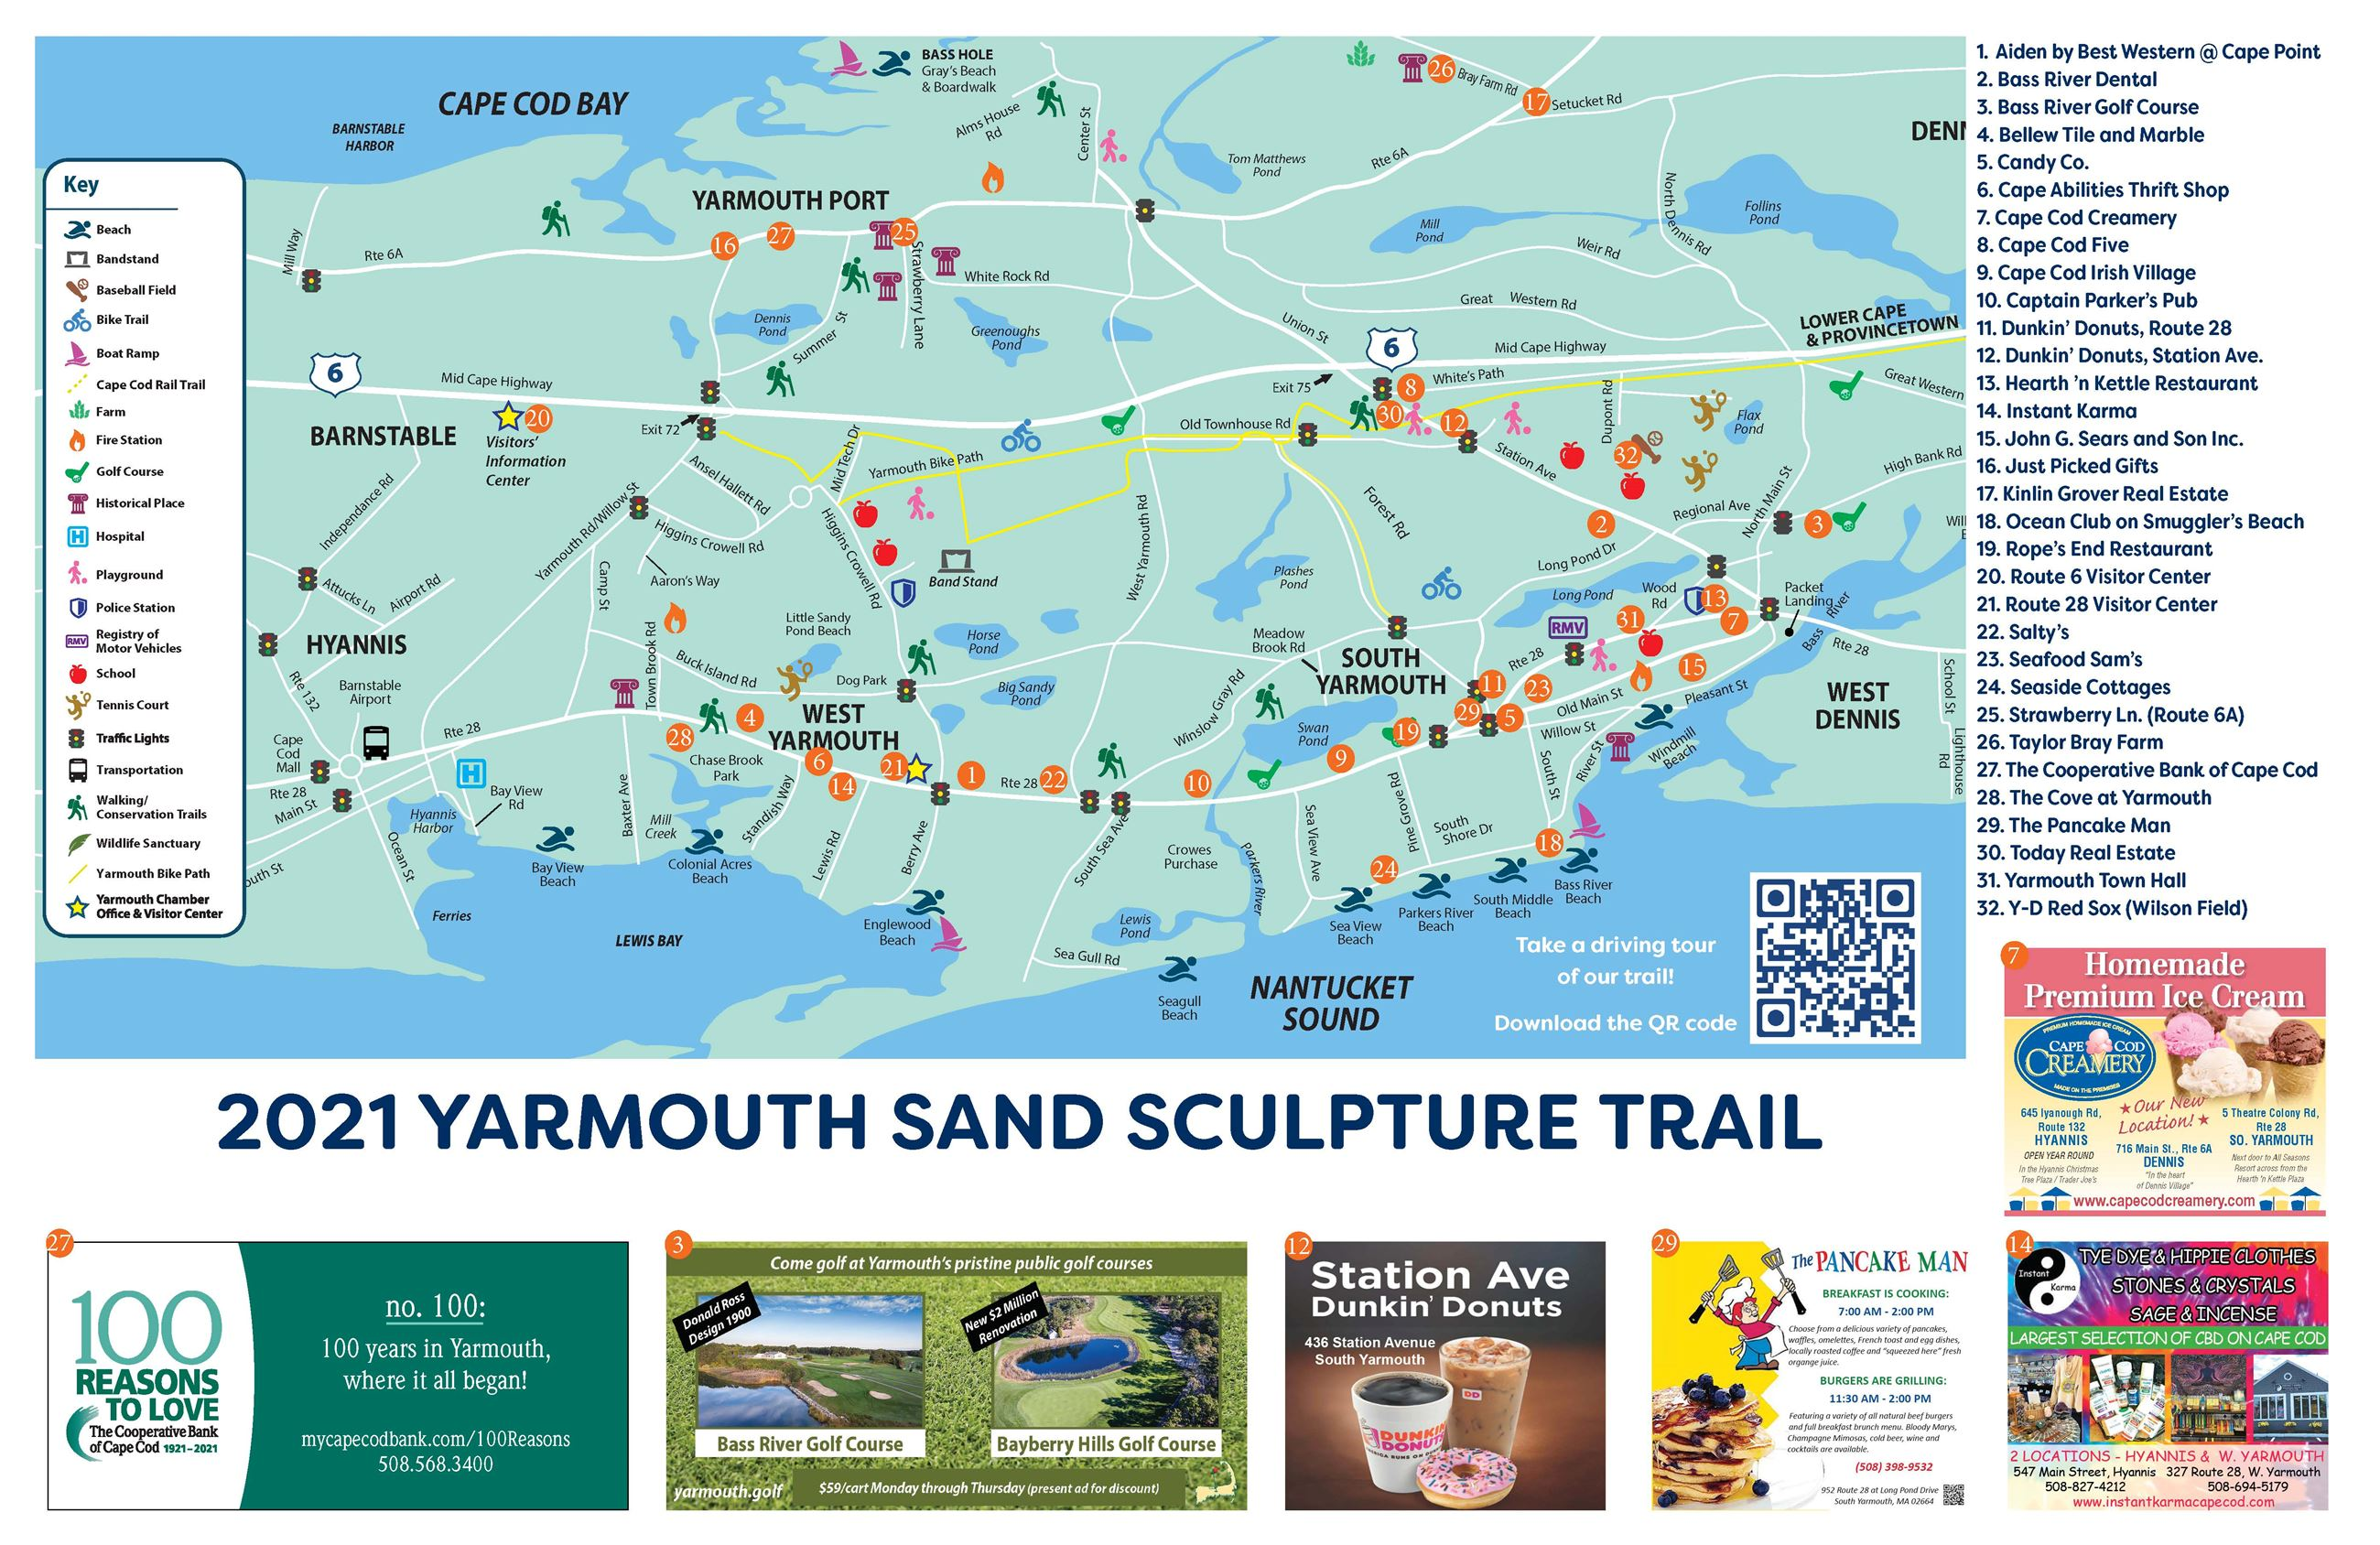 2019 Yarmouth Sand Sculpture Map